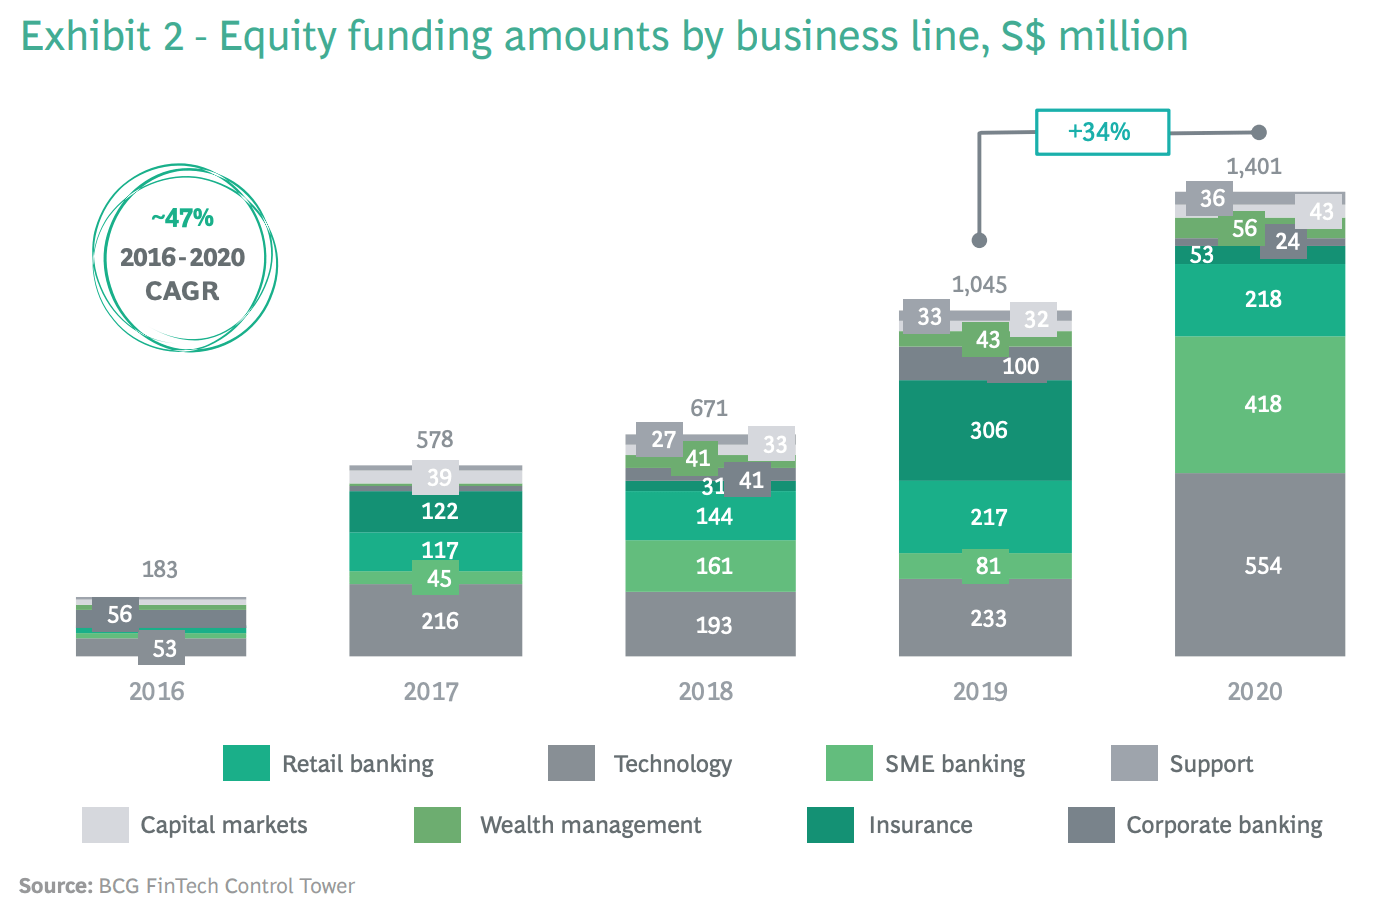 Equity funding amounts by business line, S$ million, Source: BCG Fintech Control Tower, via Singapore fintechs off to a flying start in 2021 report